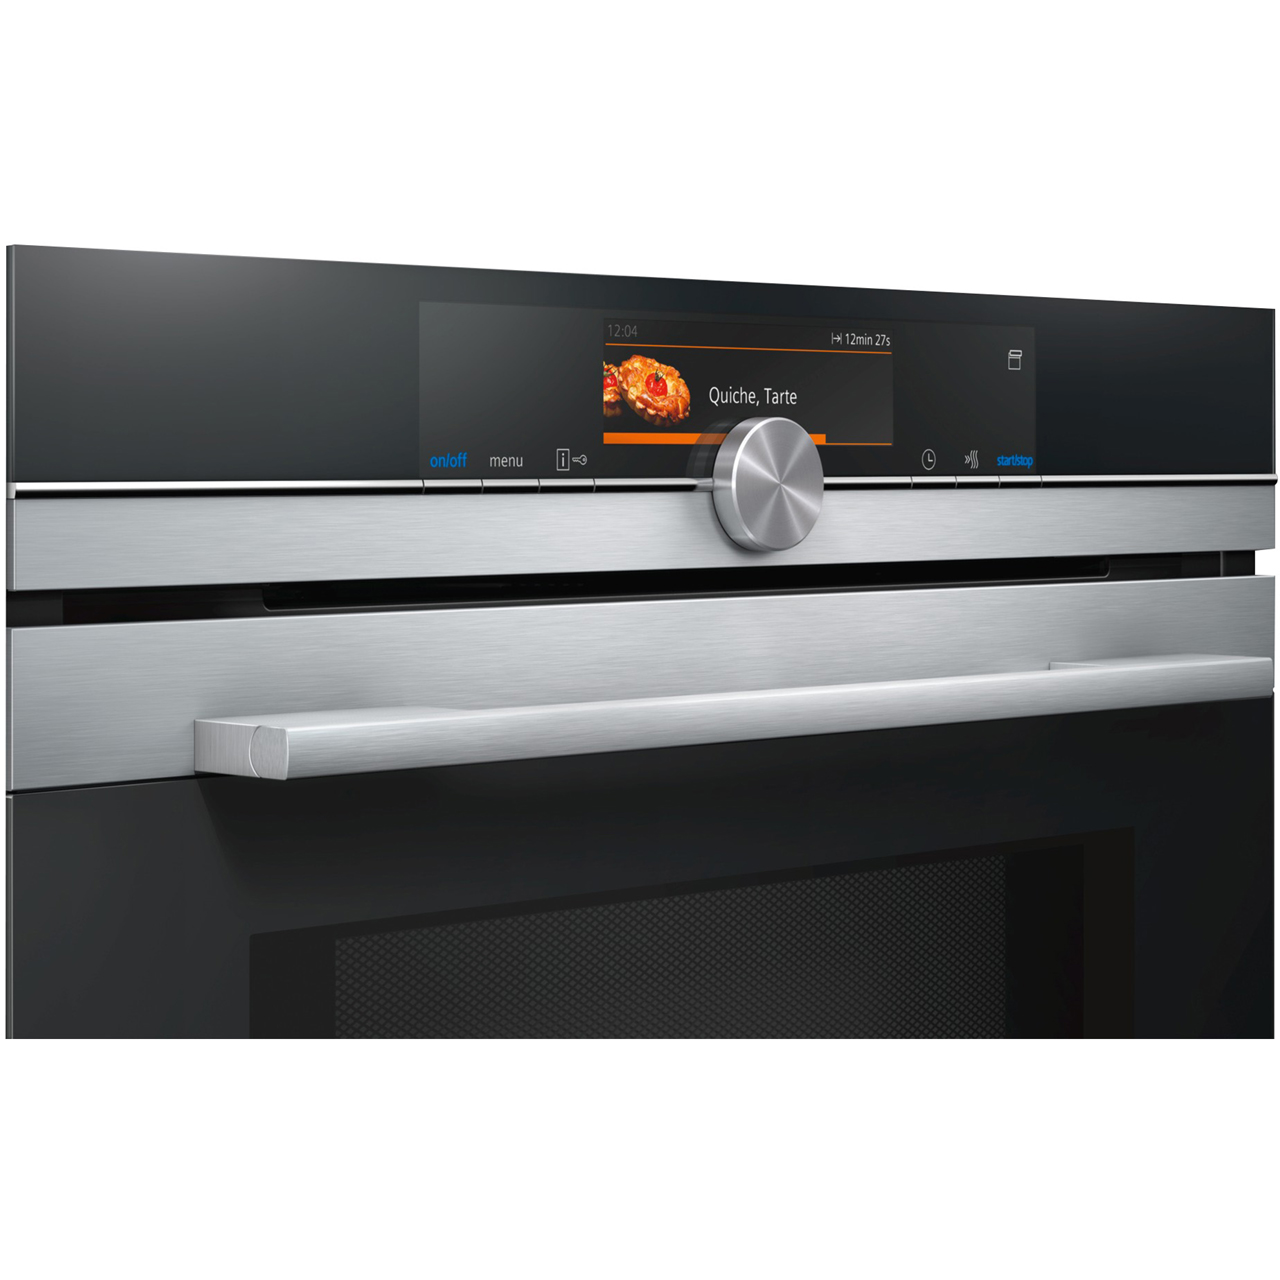 Stainless Steel Siemens HN678GES6B iQ700 WiFi Connected Built in Electric Single Oven with Microwave /& Steam Function